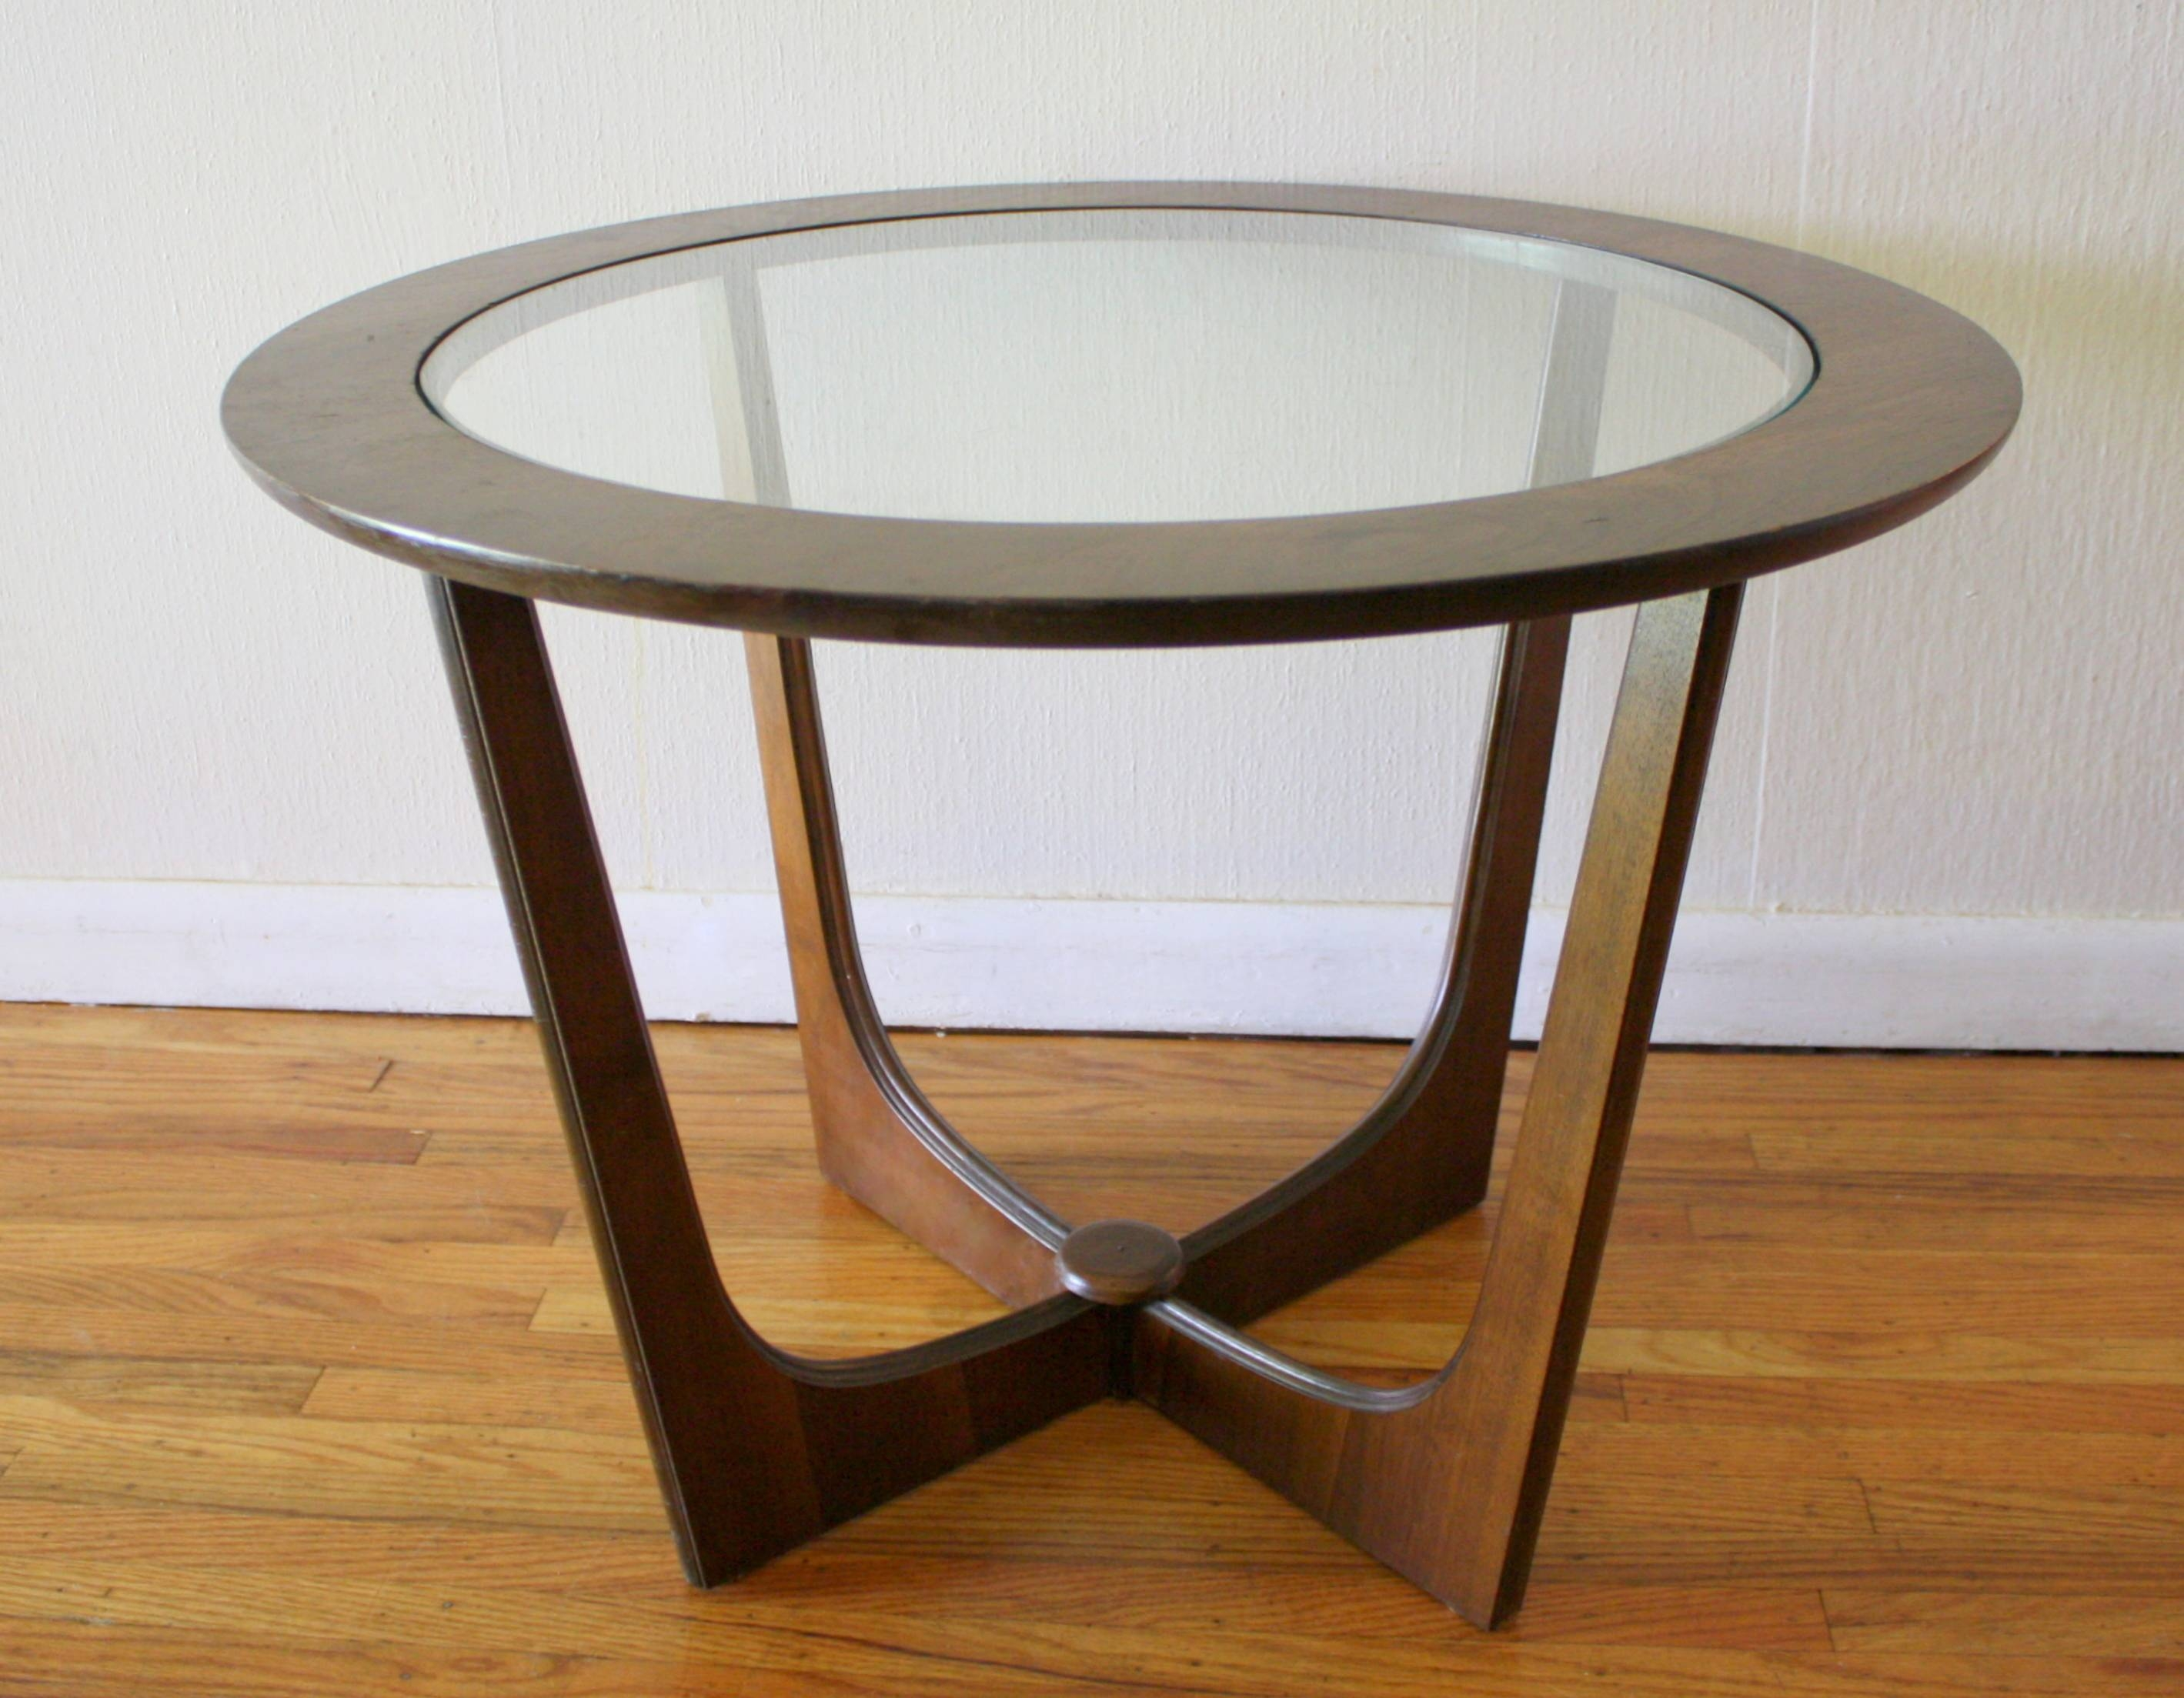 Round Coffee Table: Top Unique Round Wood And Glass Coffee Table within Round Wood And Glass Coffee Tables (Image 11 of 15)